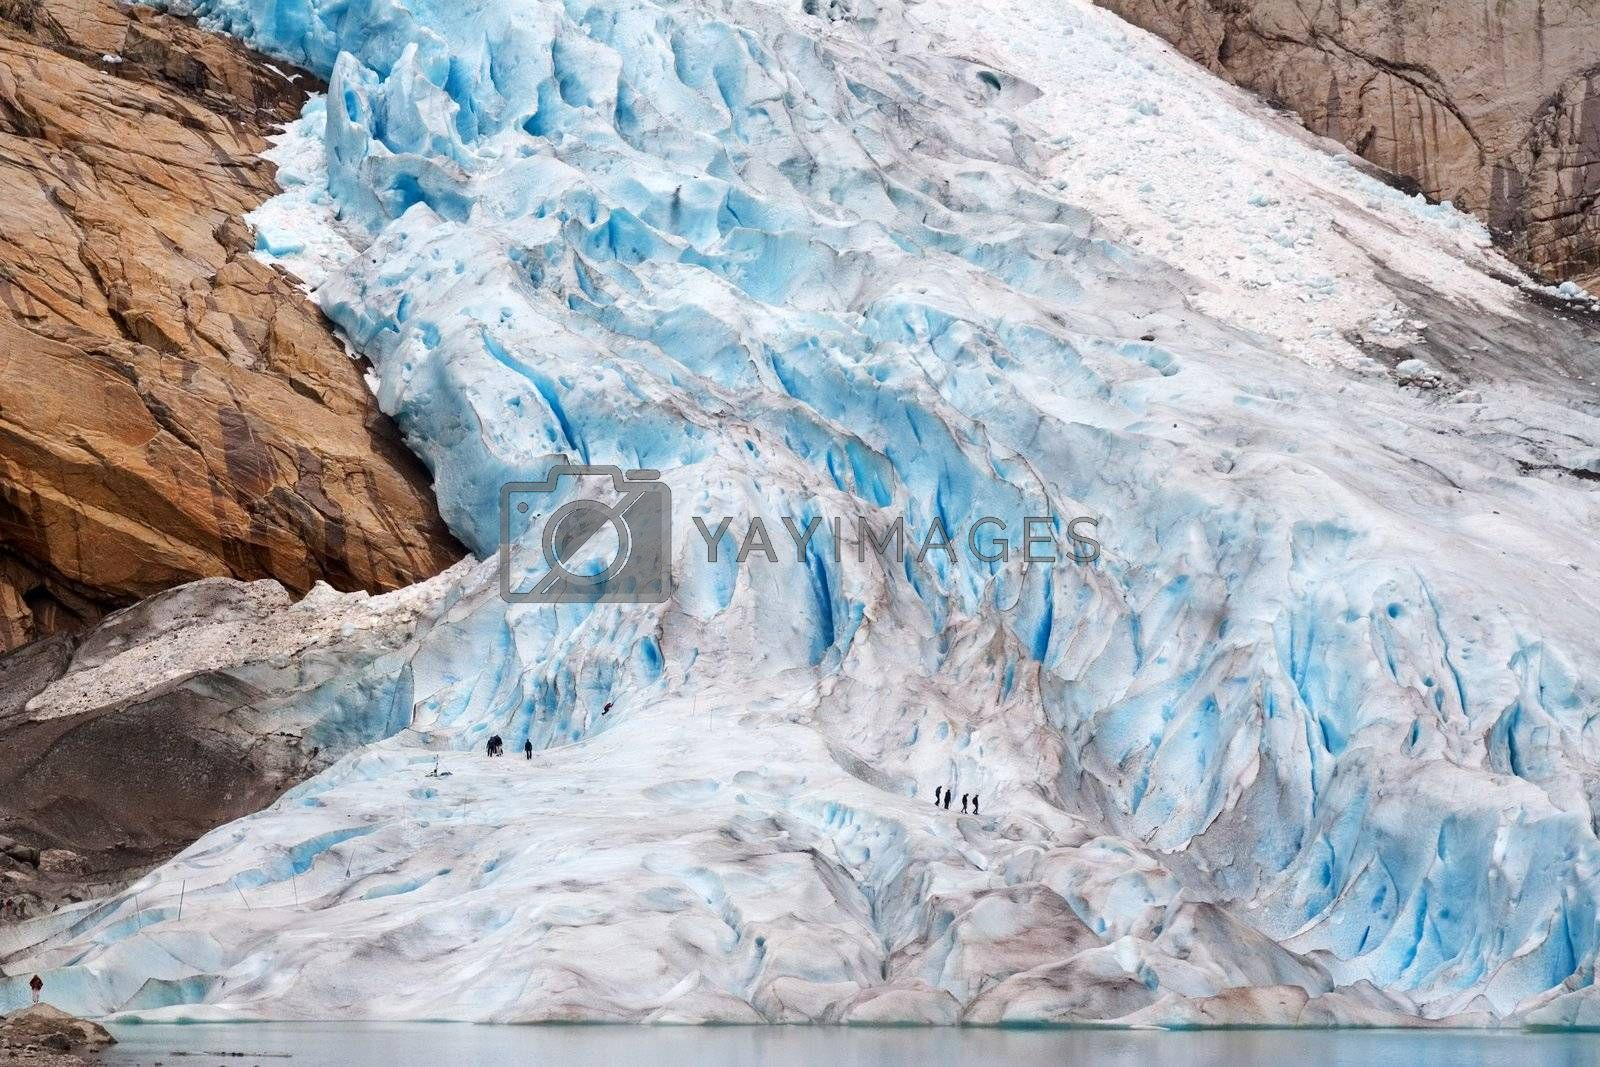 Walking up the glacier by MikLav